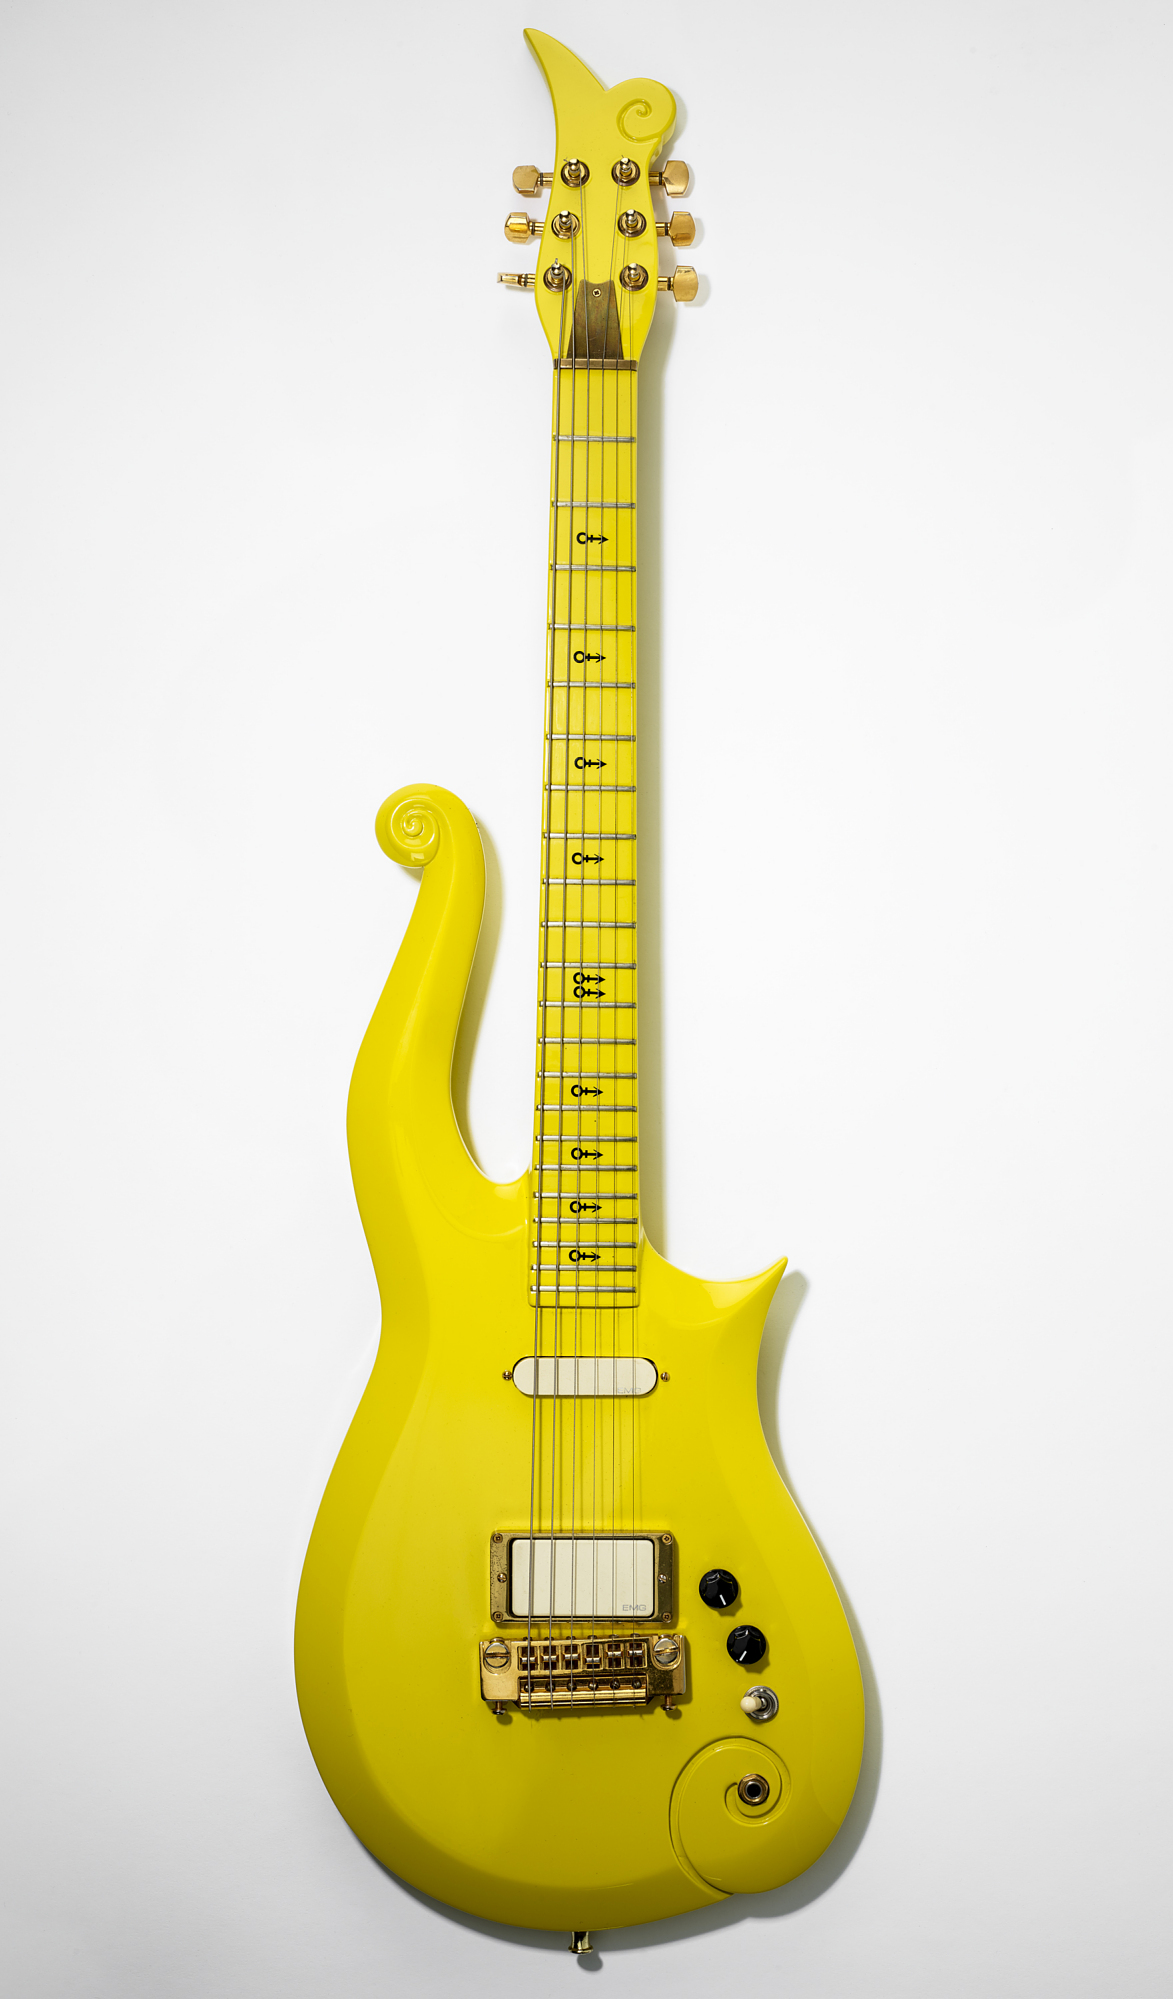 Prince's Yellow Cloud Electric Guitar - Image version 0